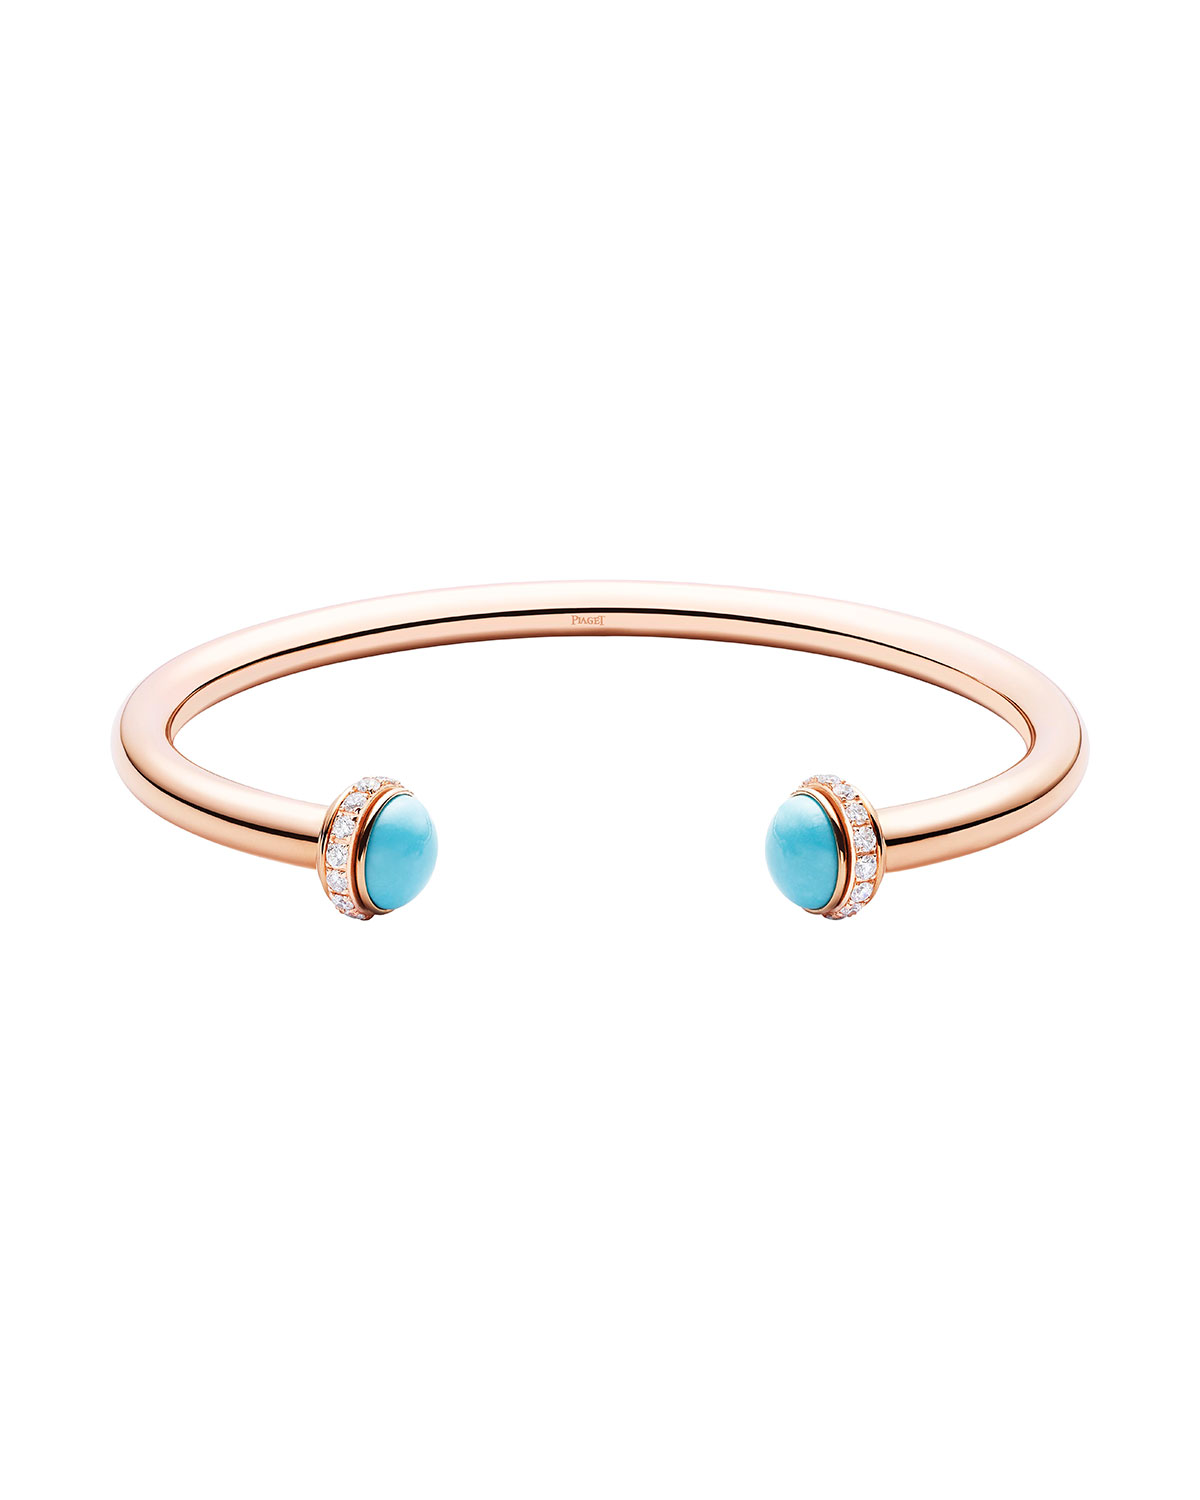 Possession 18K Red Gold & Turquoise Cabochon Bracelet with Diamonds, Size L